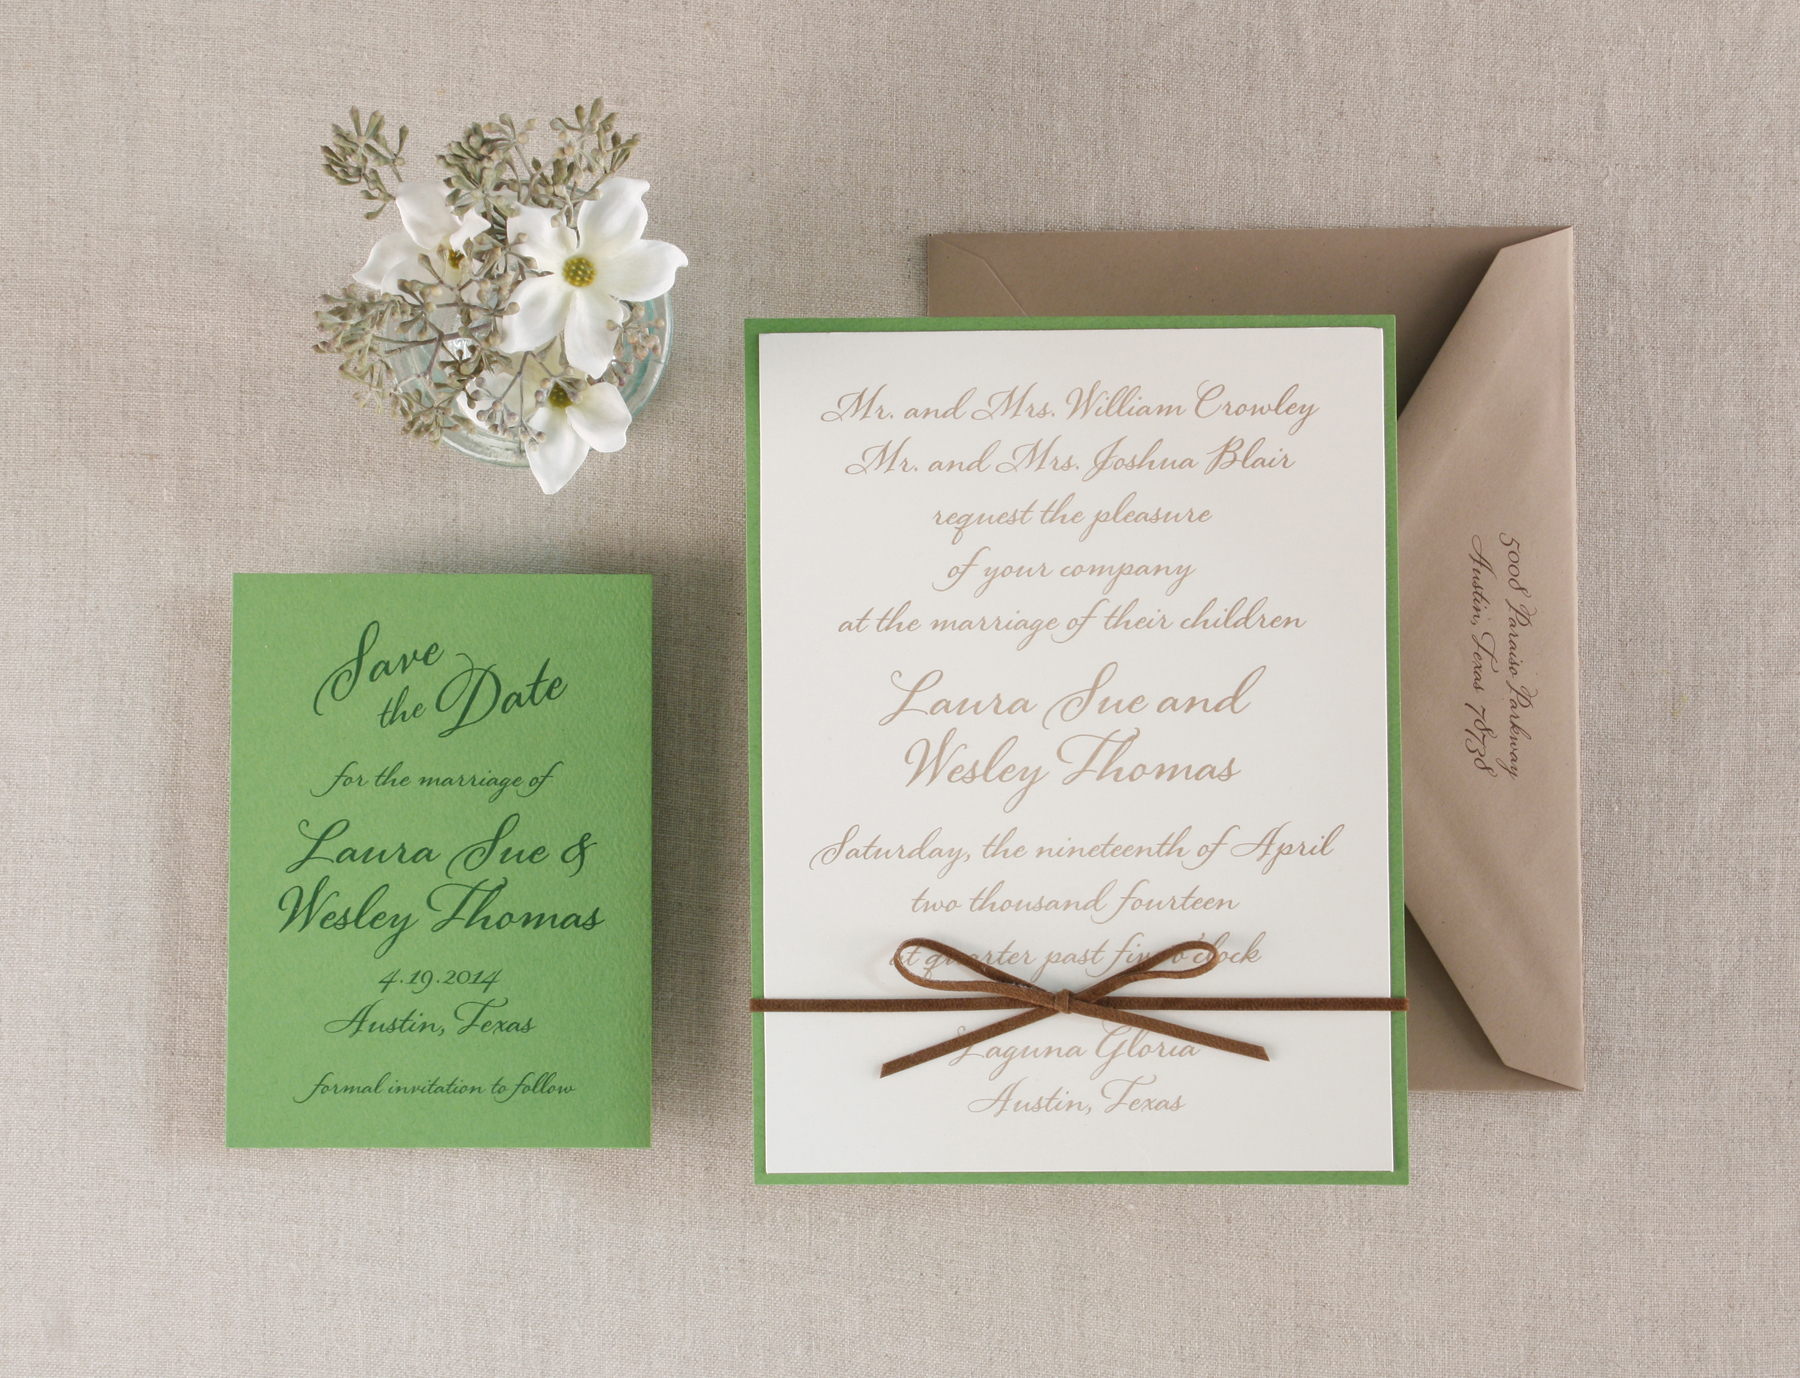 Wedding Registry Cards . Target Wedding Registry Cards For Invitations ...